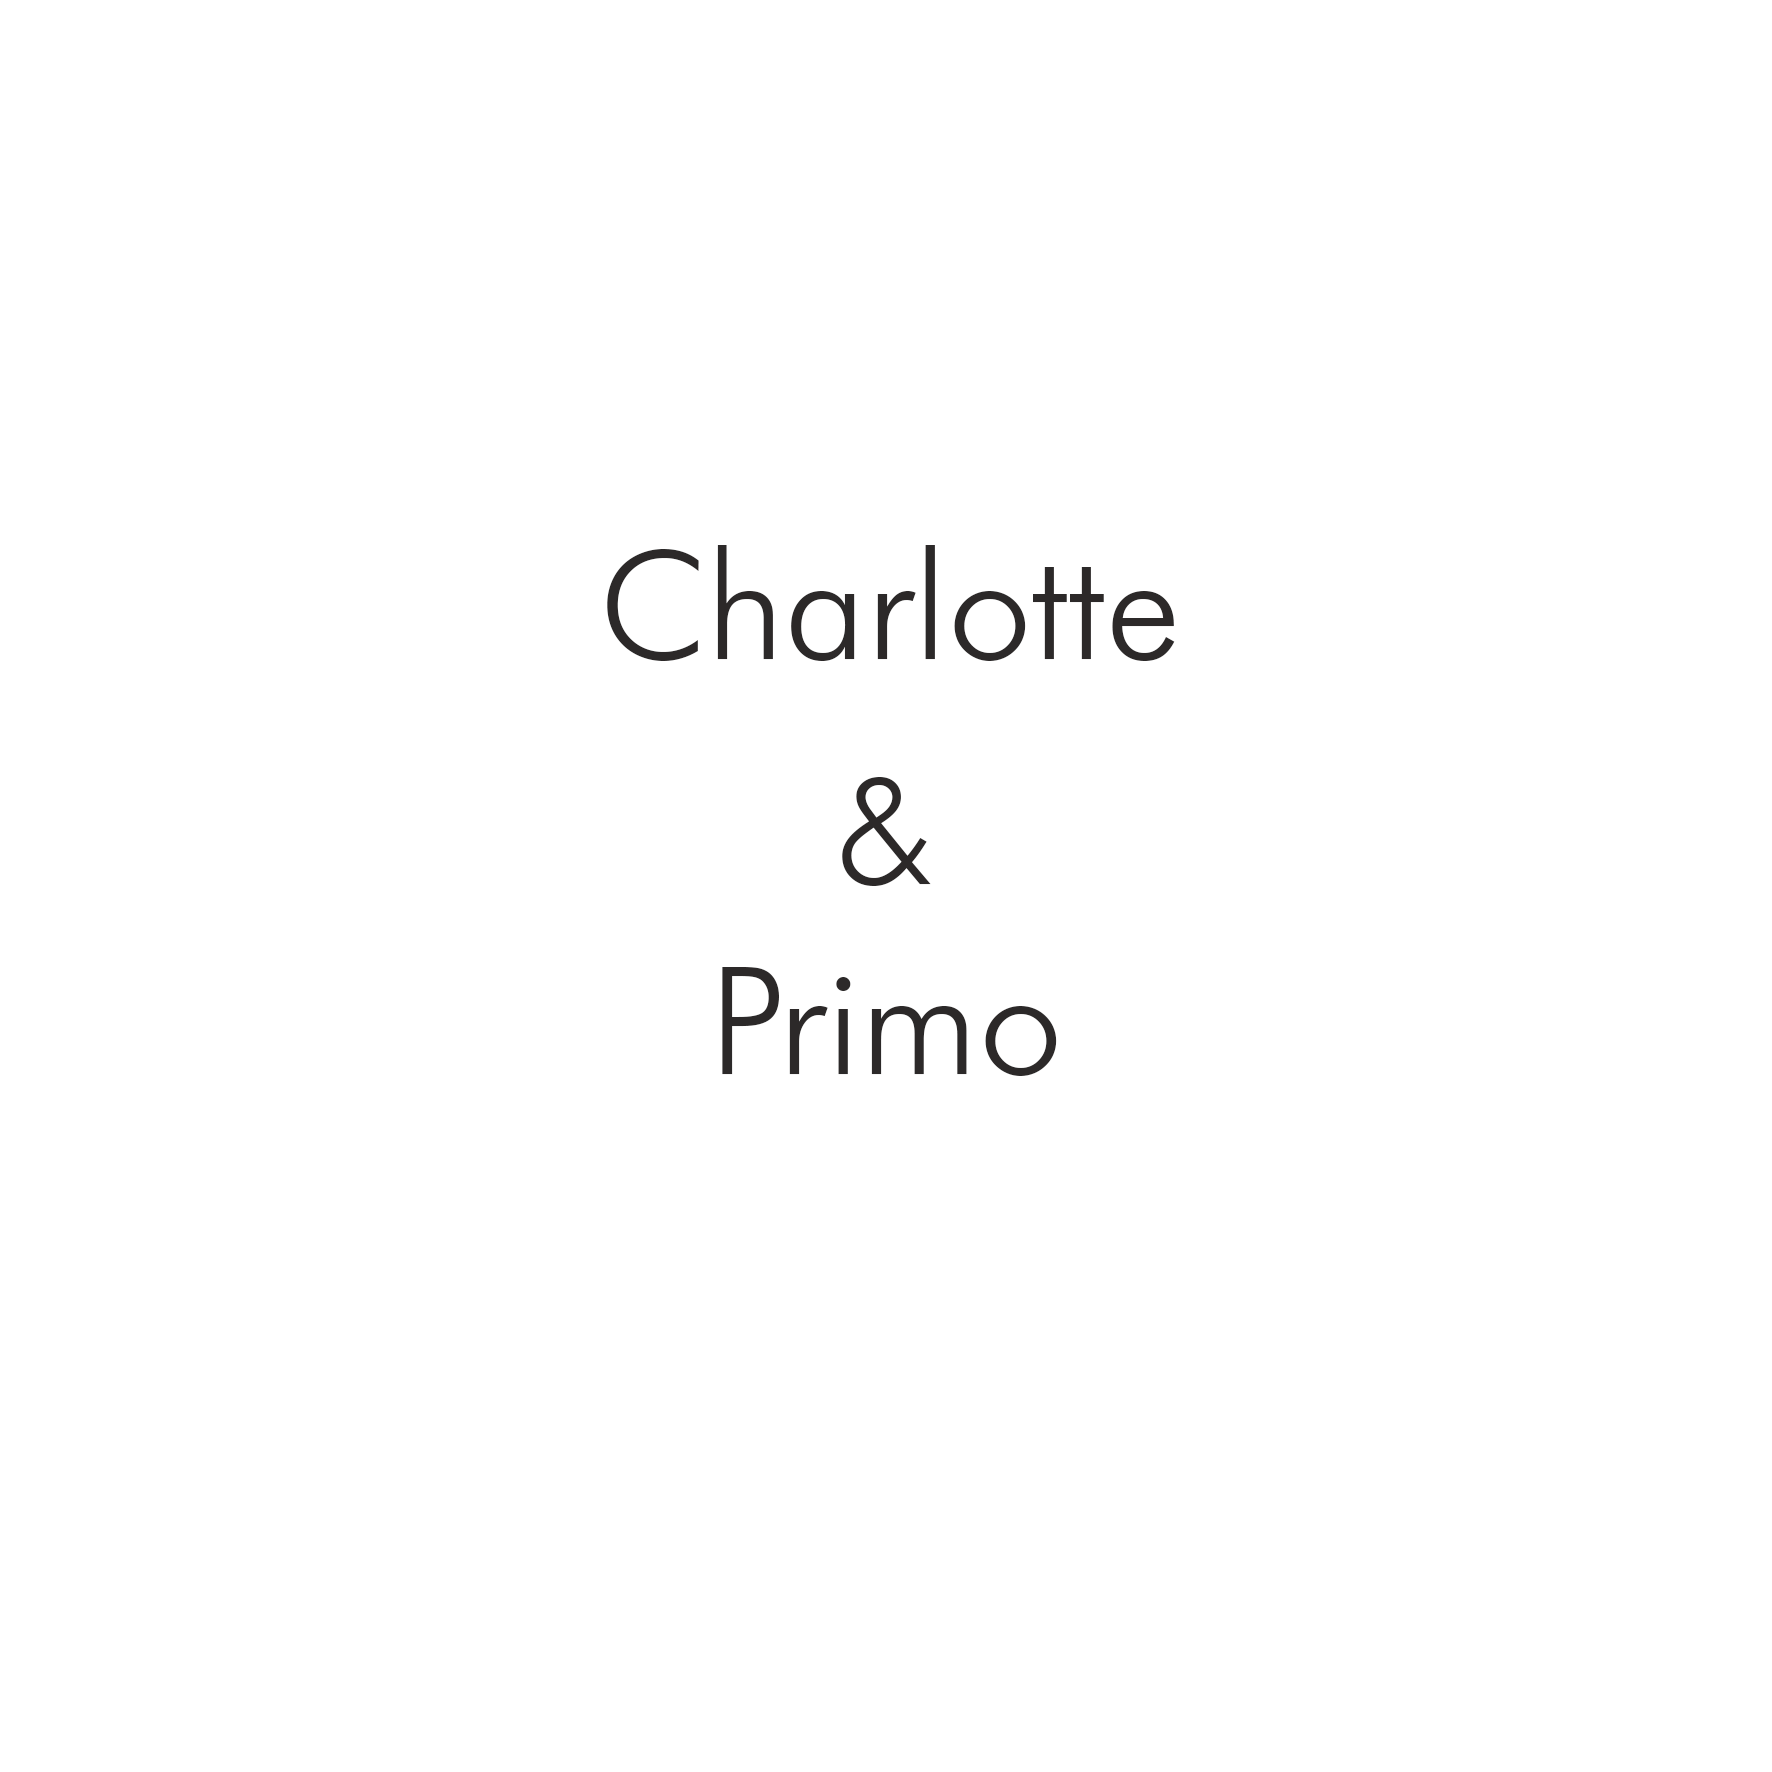 Charlotte & Primo.png